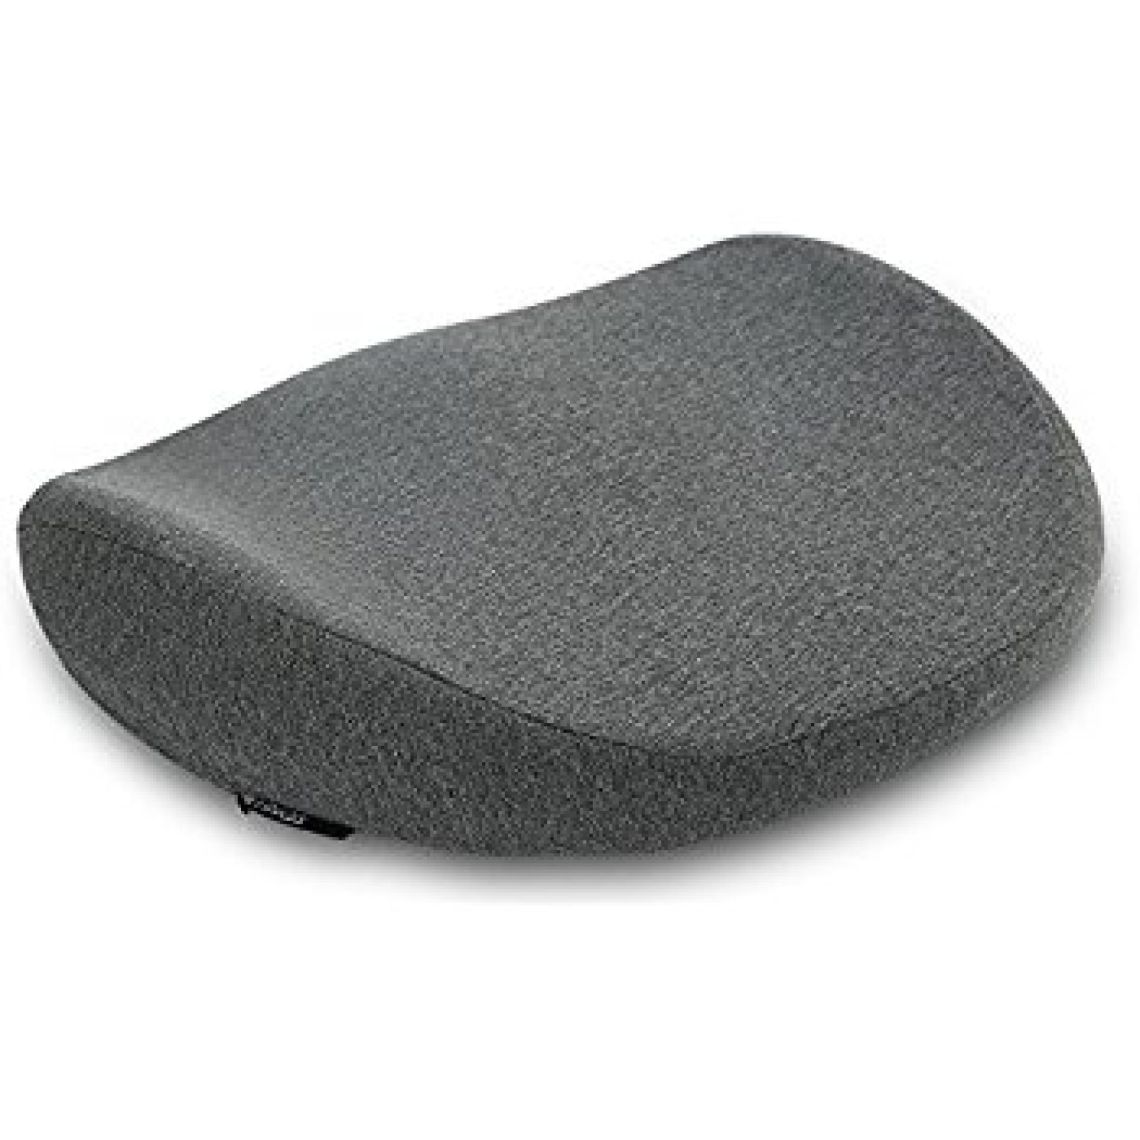 Amazon.com: Hnos Seat Cushion for Back Pain & Sciatica Relief - Non-slip Coccyx Chair Cushion for Office Use - Car Seat Cushion - Grey: Home & Kitchen